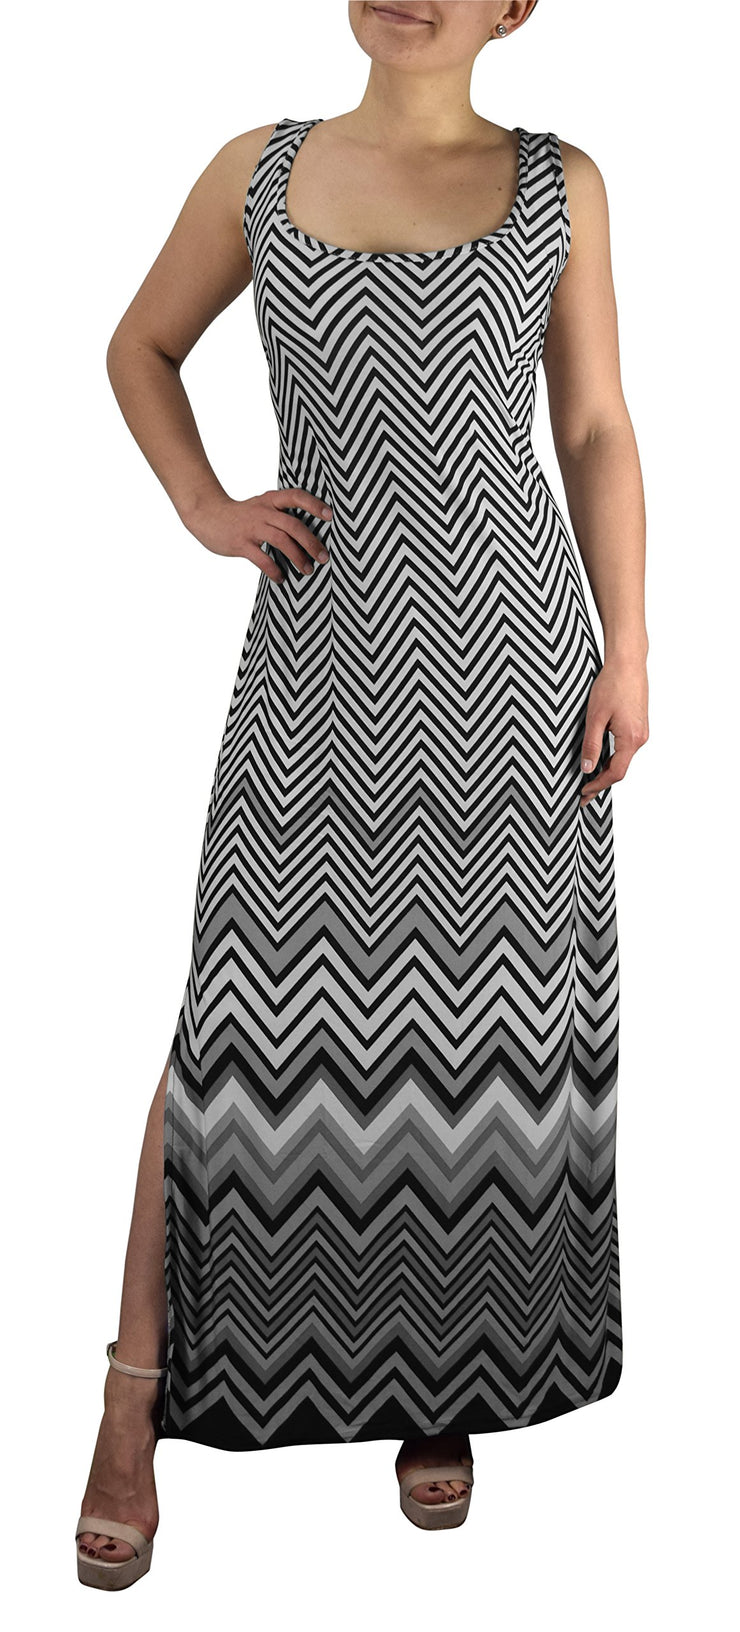 B0270-Maxi-Dress-Ombre-Lrg-Grey-Mrc-SD